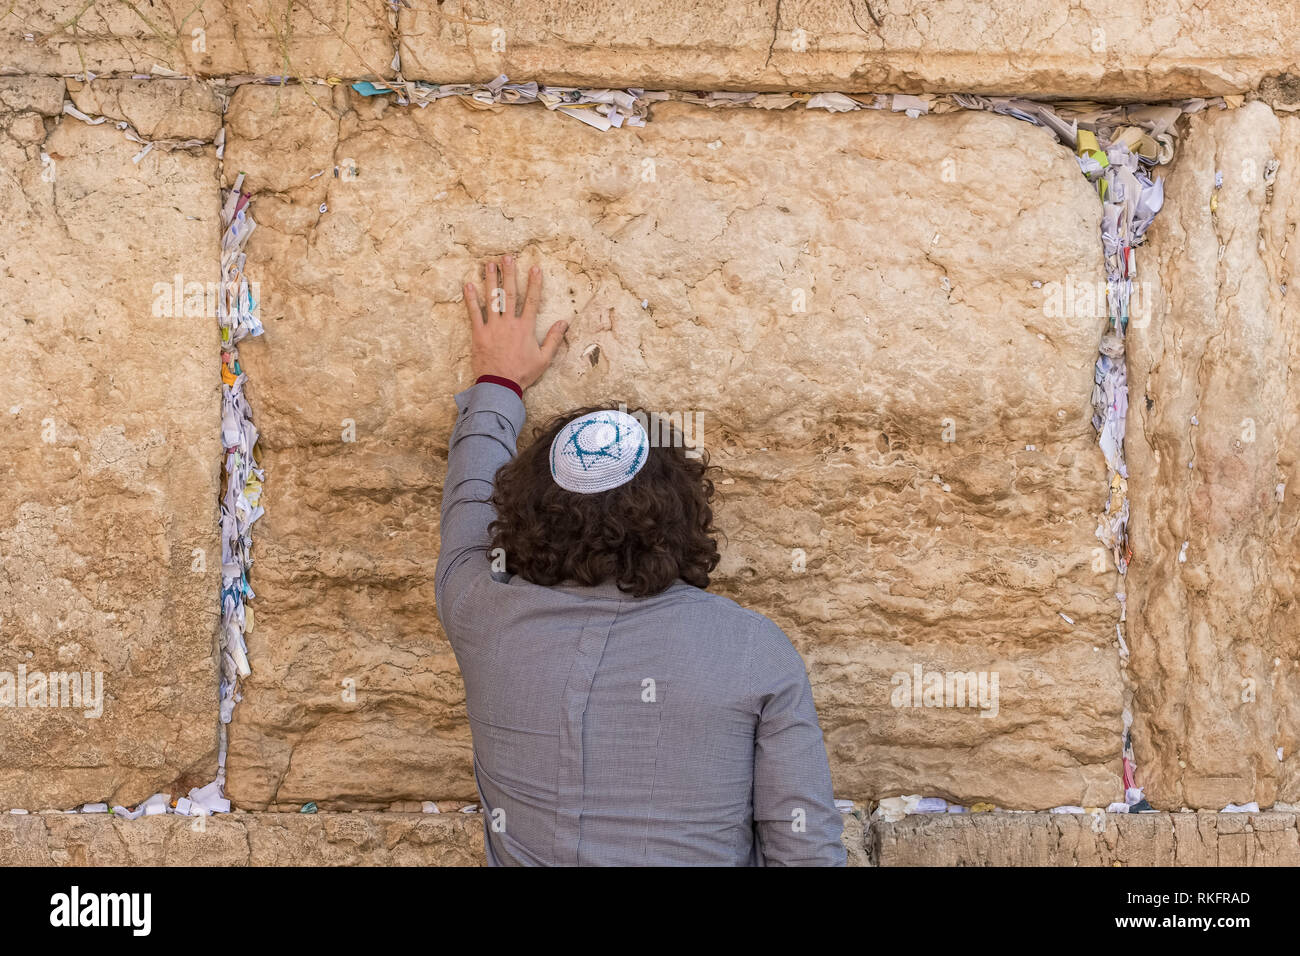 Jerusalem, Israel - November 25, 2018: Religious jew praying at the Western wall in Jerusalem - Stock Image